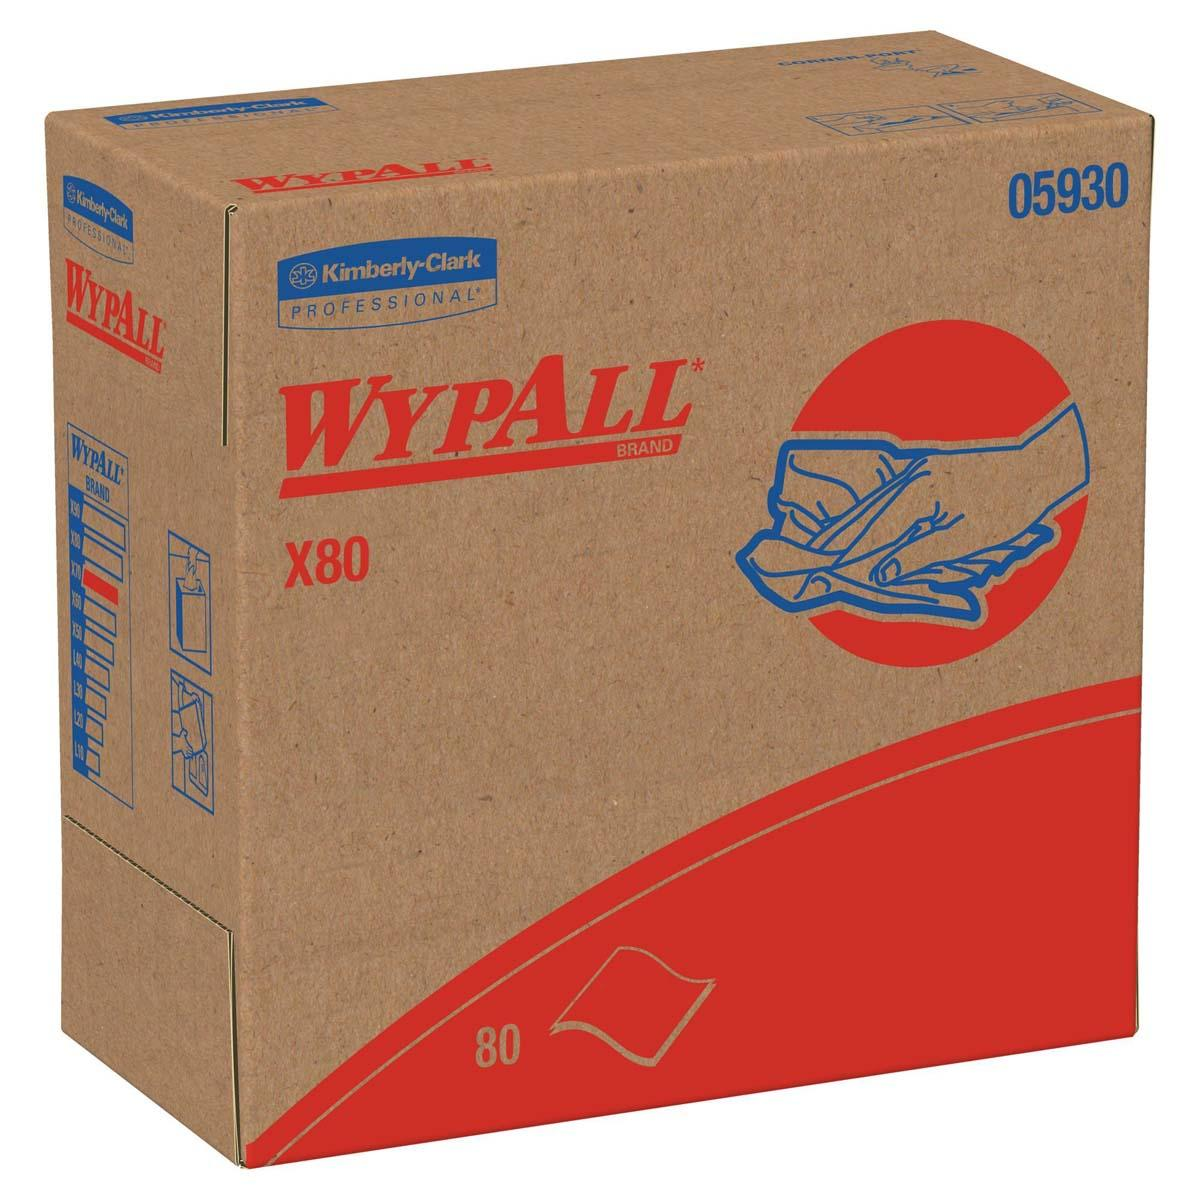 Wypall X80 Reusable Wipes (05930), Extended Use Wipers, Red, 80 Sheets / Pop-Up Box; 5 Boxes / Case